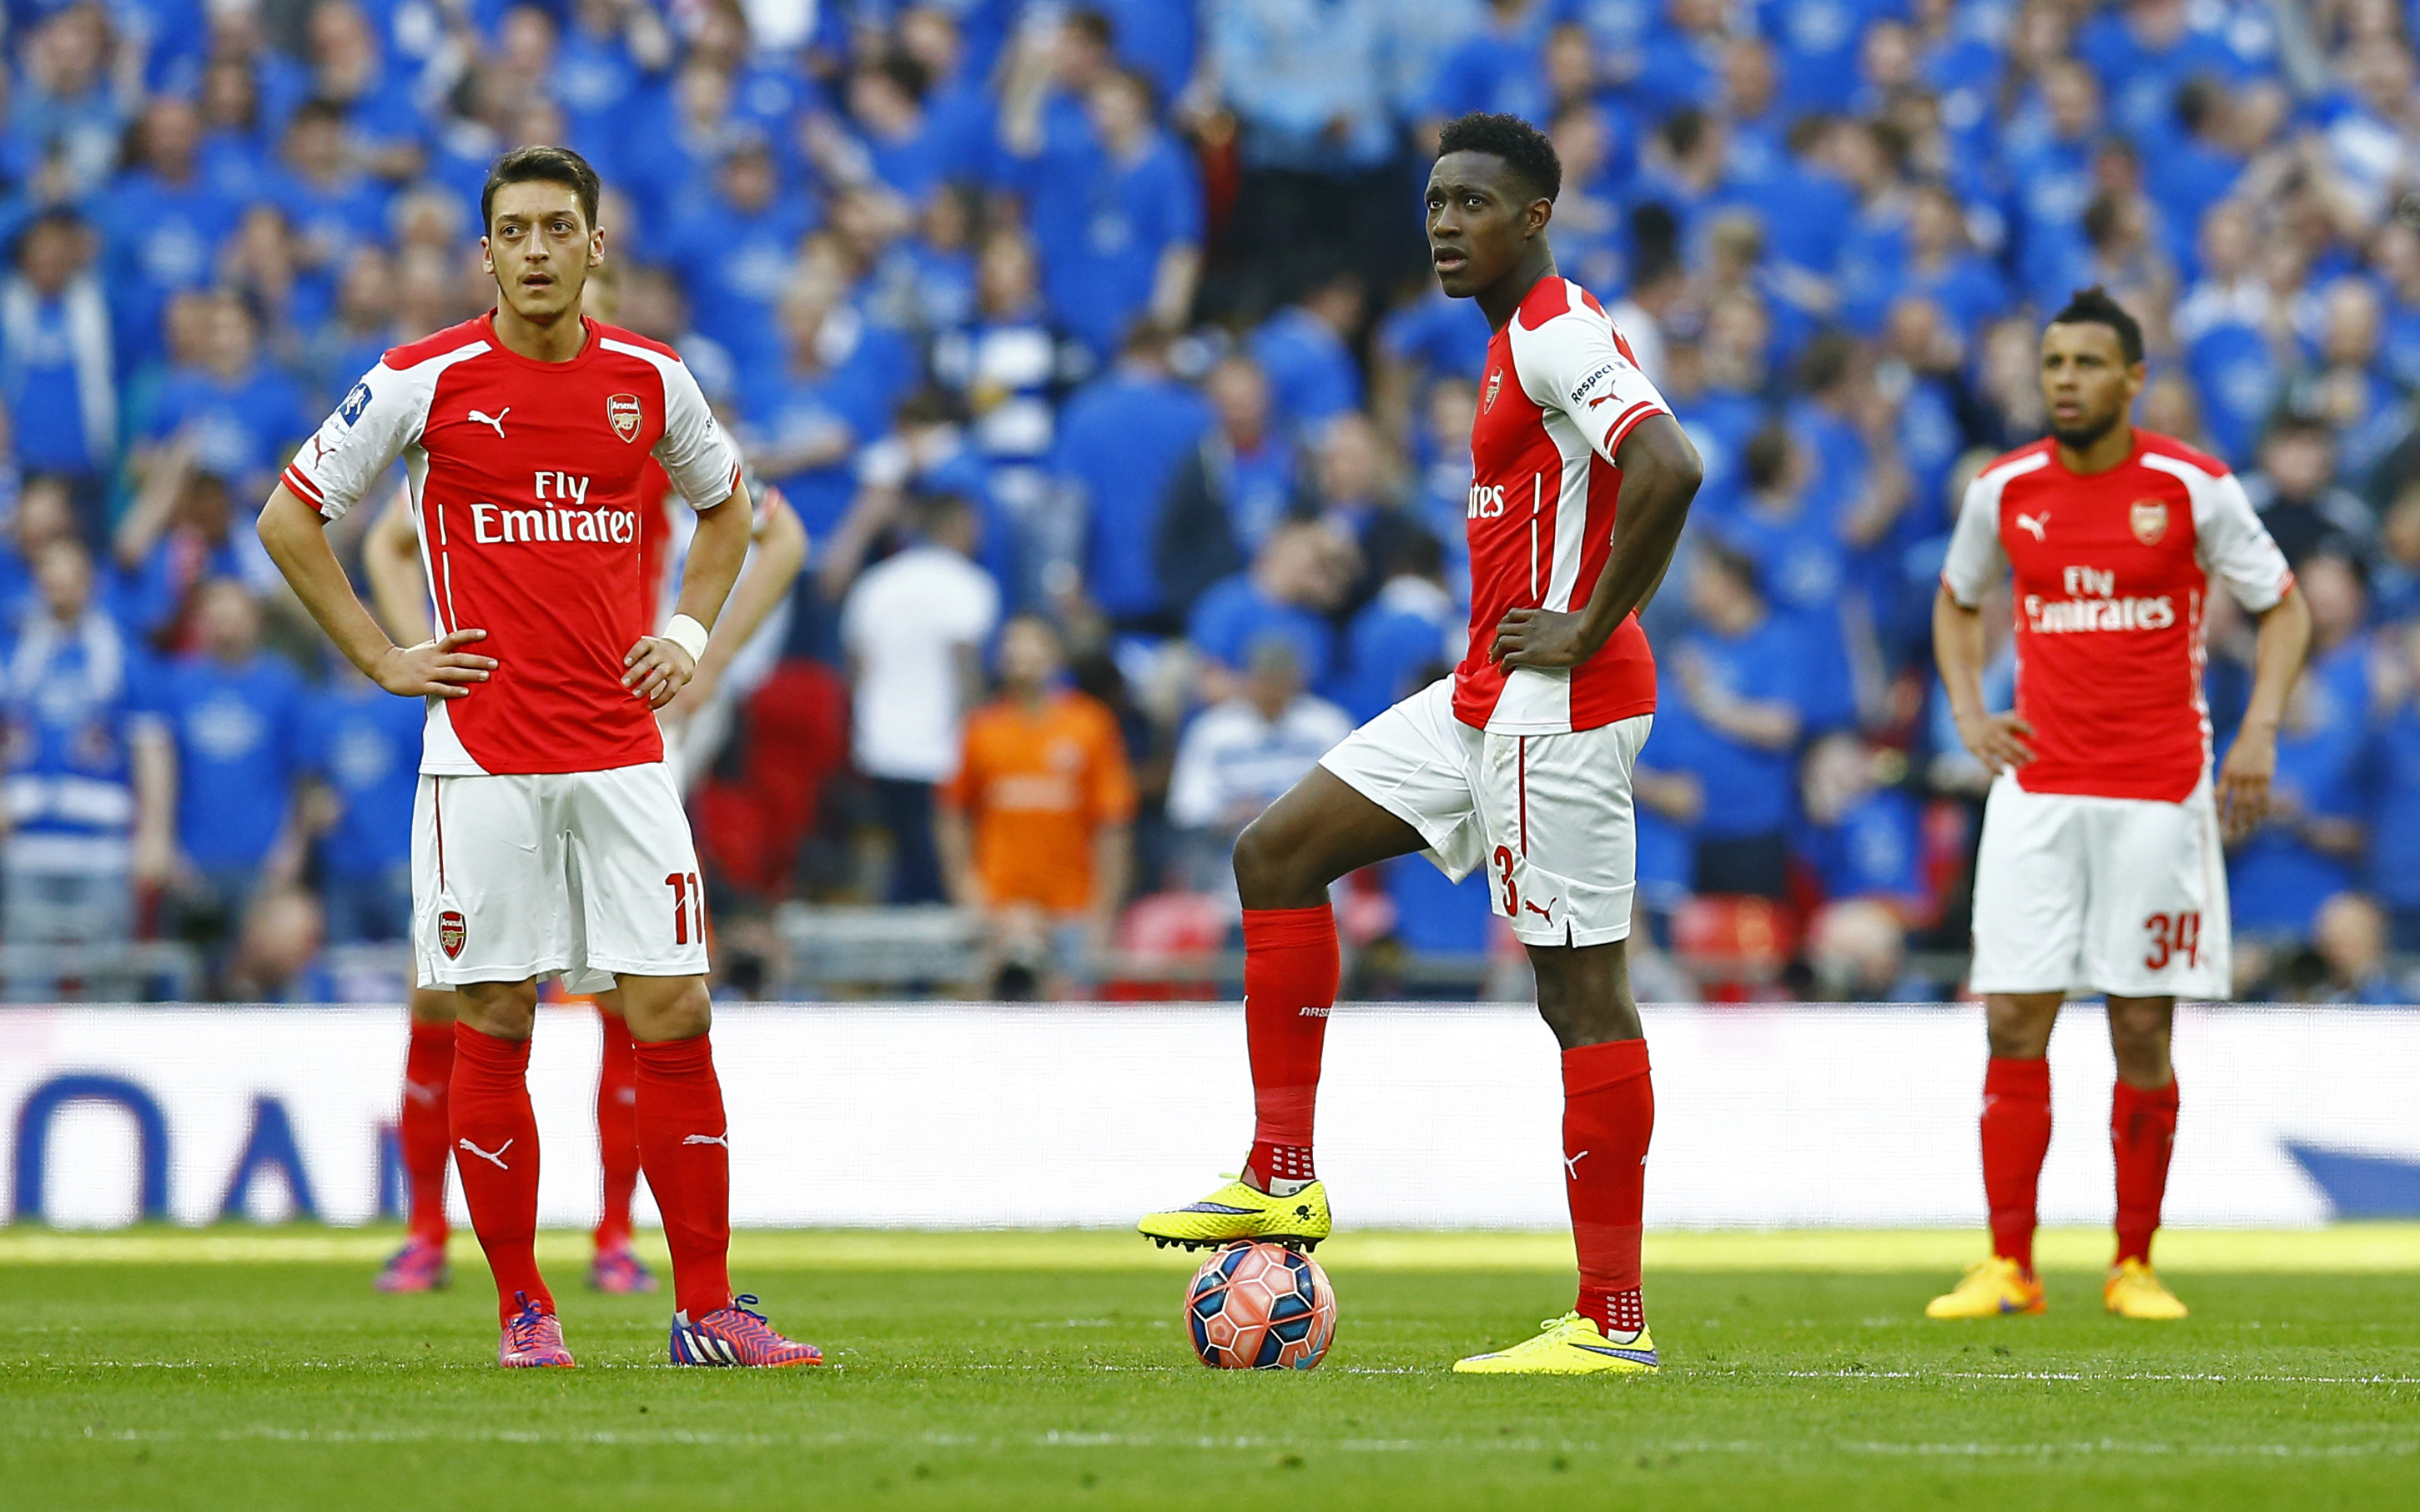 Arsenal's Mesut Ozil and Danny Welbeck look dejected after Garath McCleary (not pictured) scored for Reading (Reuters)